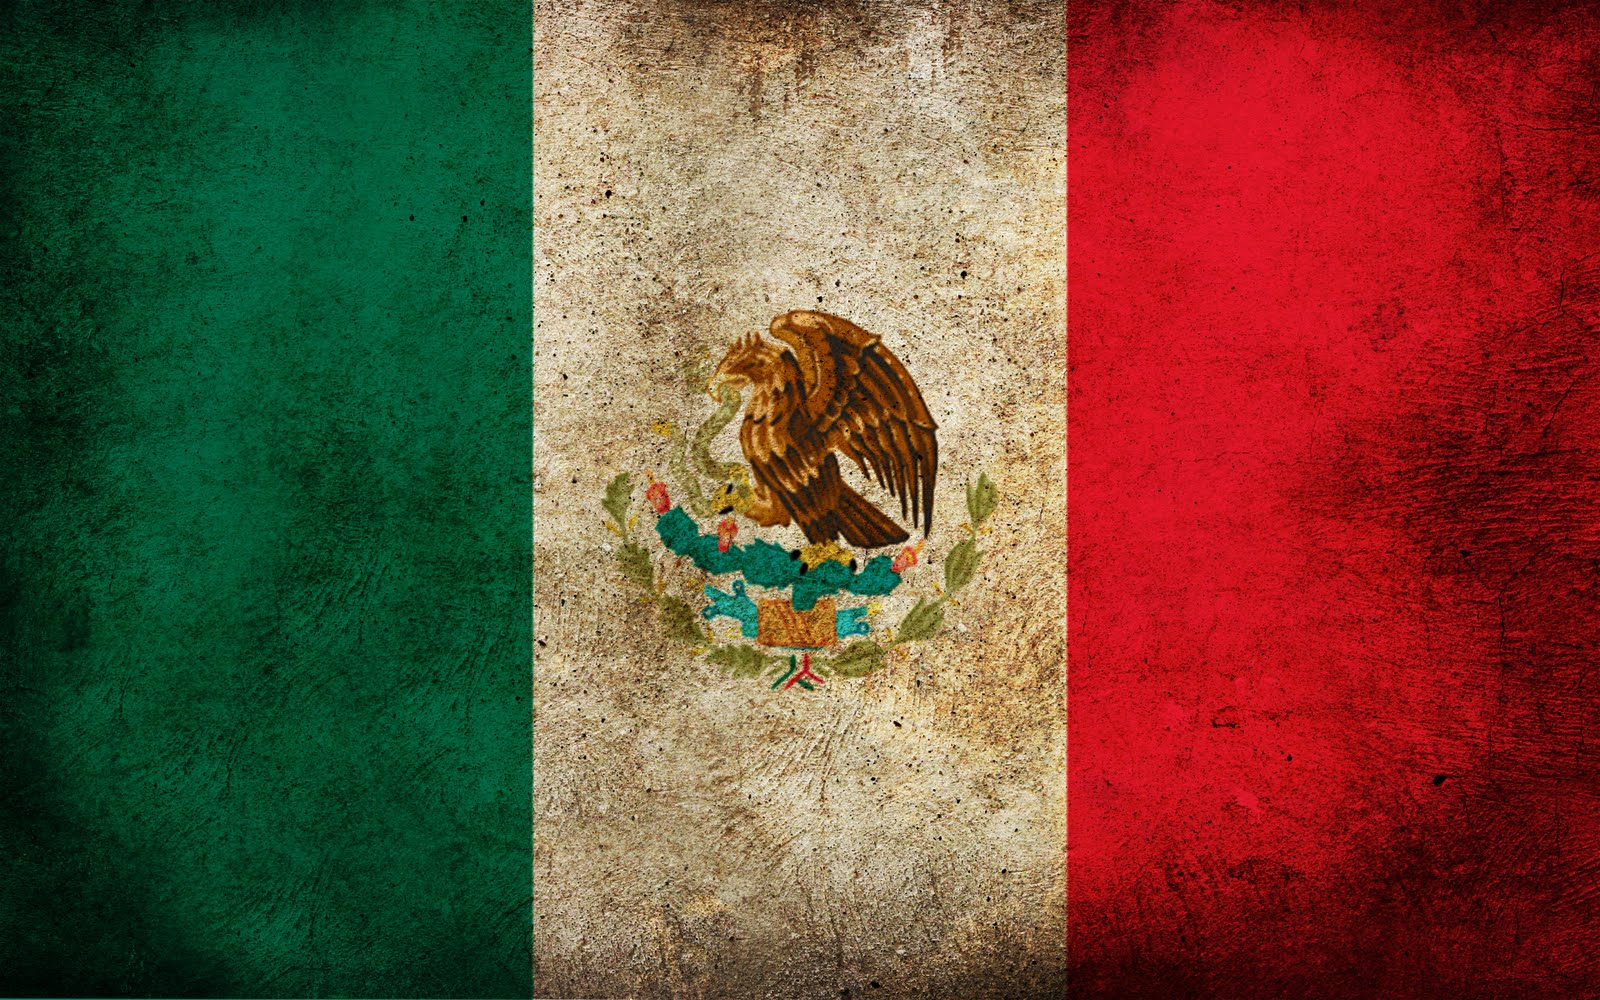 Mexico fondos de escritorio de Mexico wallpapers de Mexico gratis 1600x1000